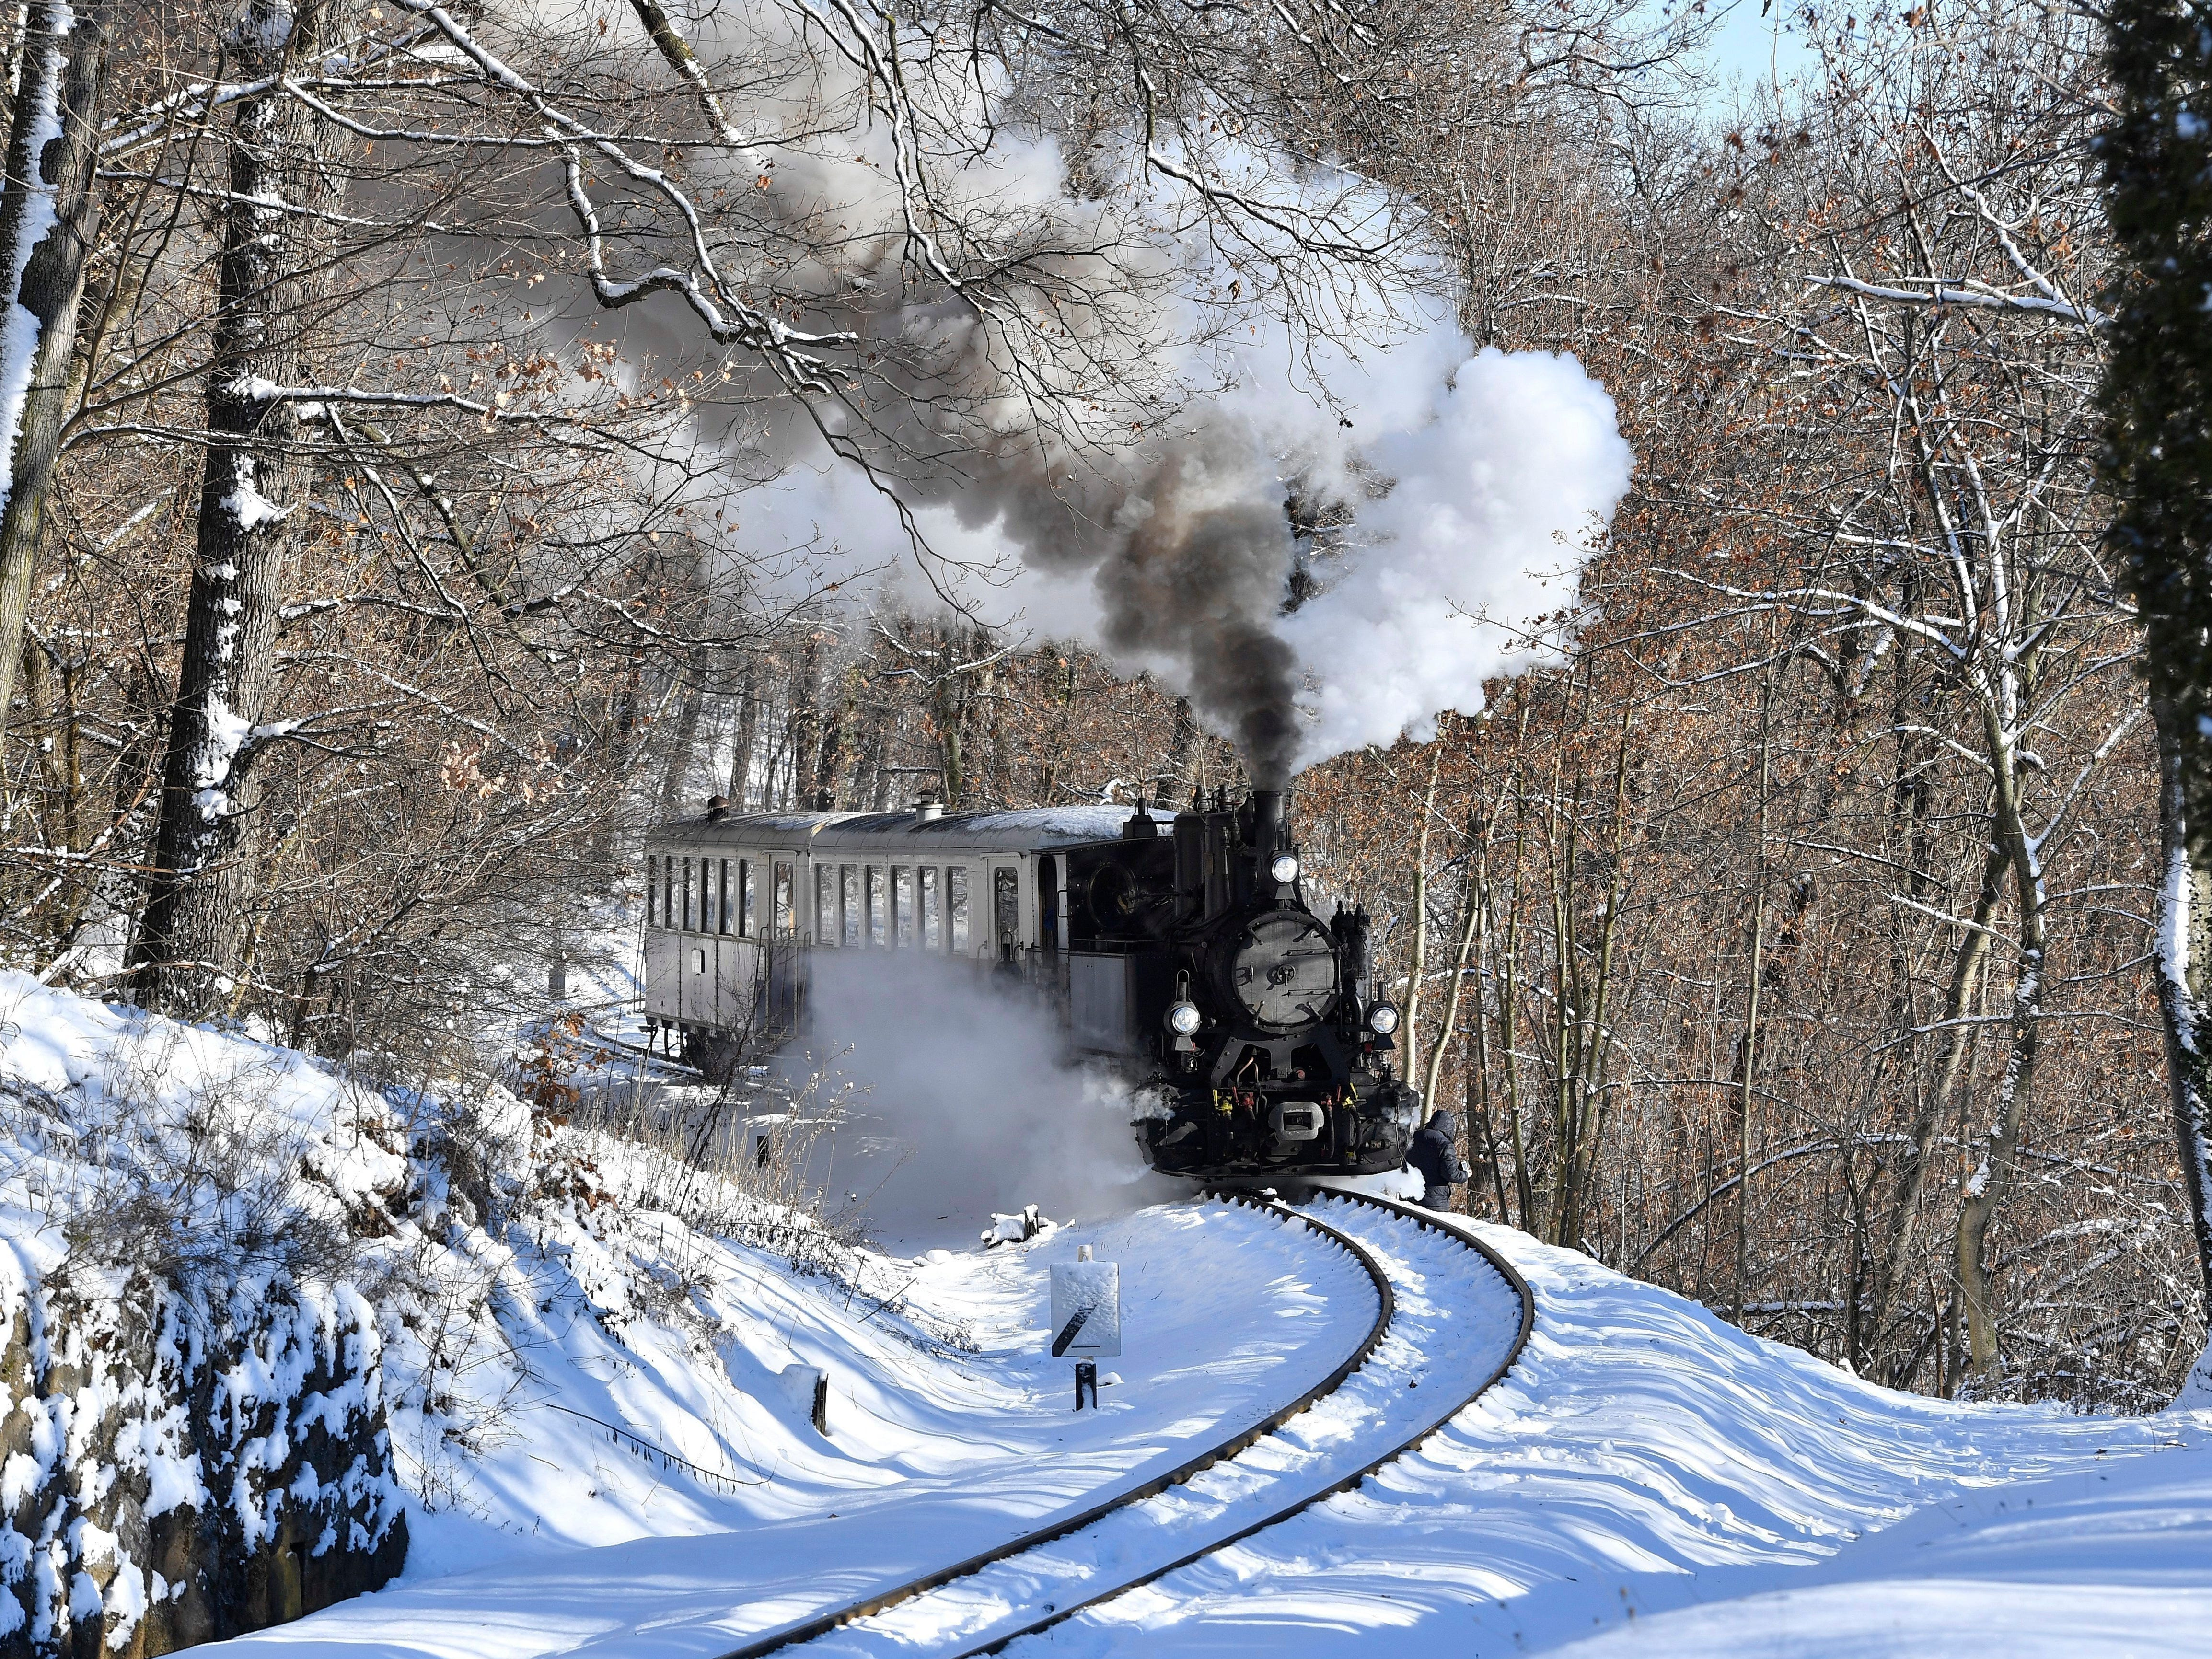 A nostalgic train pulled by a 490 steam engine drives through a winterly landscape on its way to the Szepjuhaszne station of the Children's Railway, in Budapest, Hungary on Jan. 6, 2019. Except the engine's driver all posts on the train are traditionally operated by children at the age of between 10 and 14 years. The Children's Railway is an 11 kilometers long narrow gauge line between Szechenyi-hegy and Huvosvolgy in the Hungarian capital.